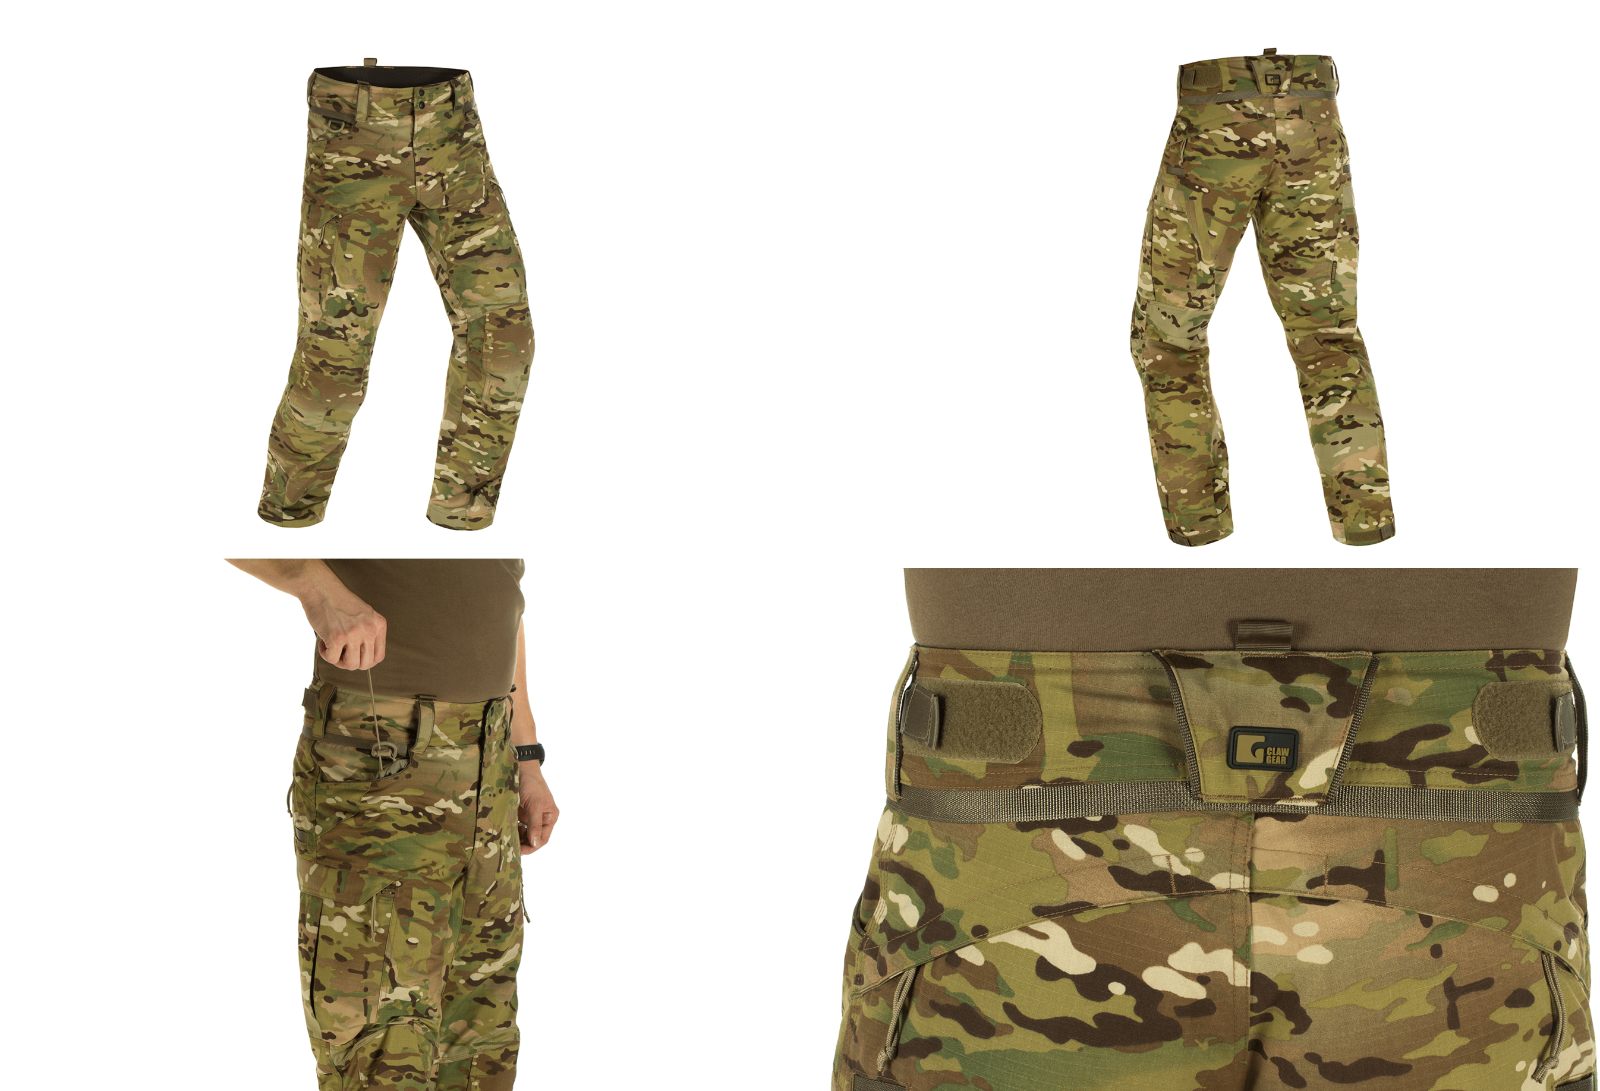 Claw Gear Operator Pantaloni Combat Pant Knee Genuine Multicam Crye Size 60 R -  - ebay.it